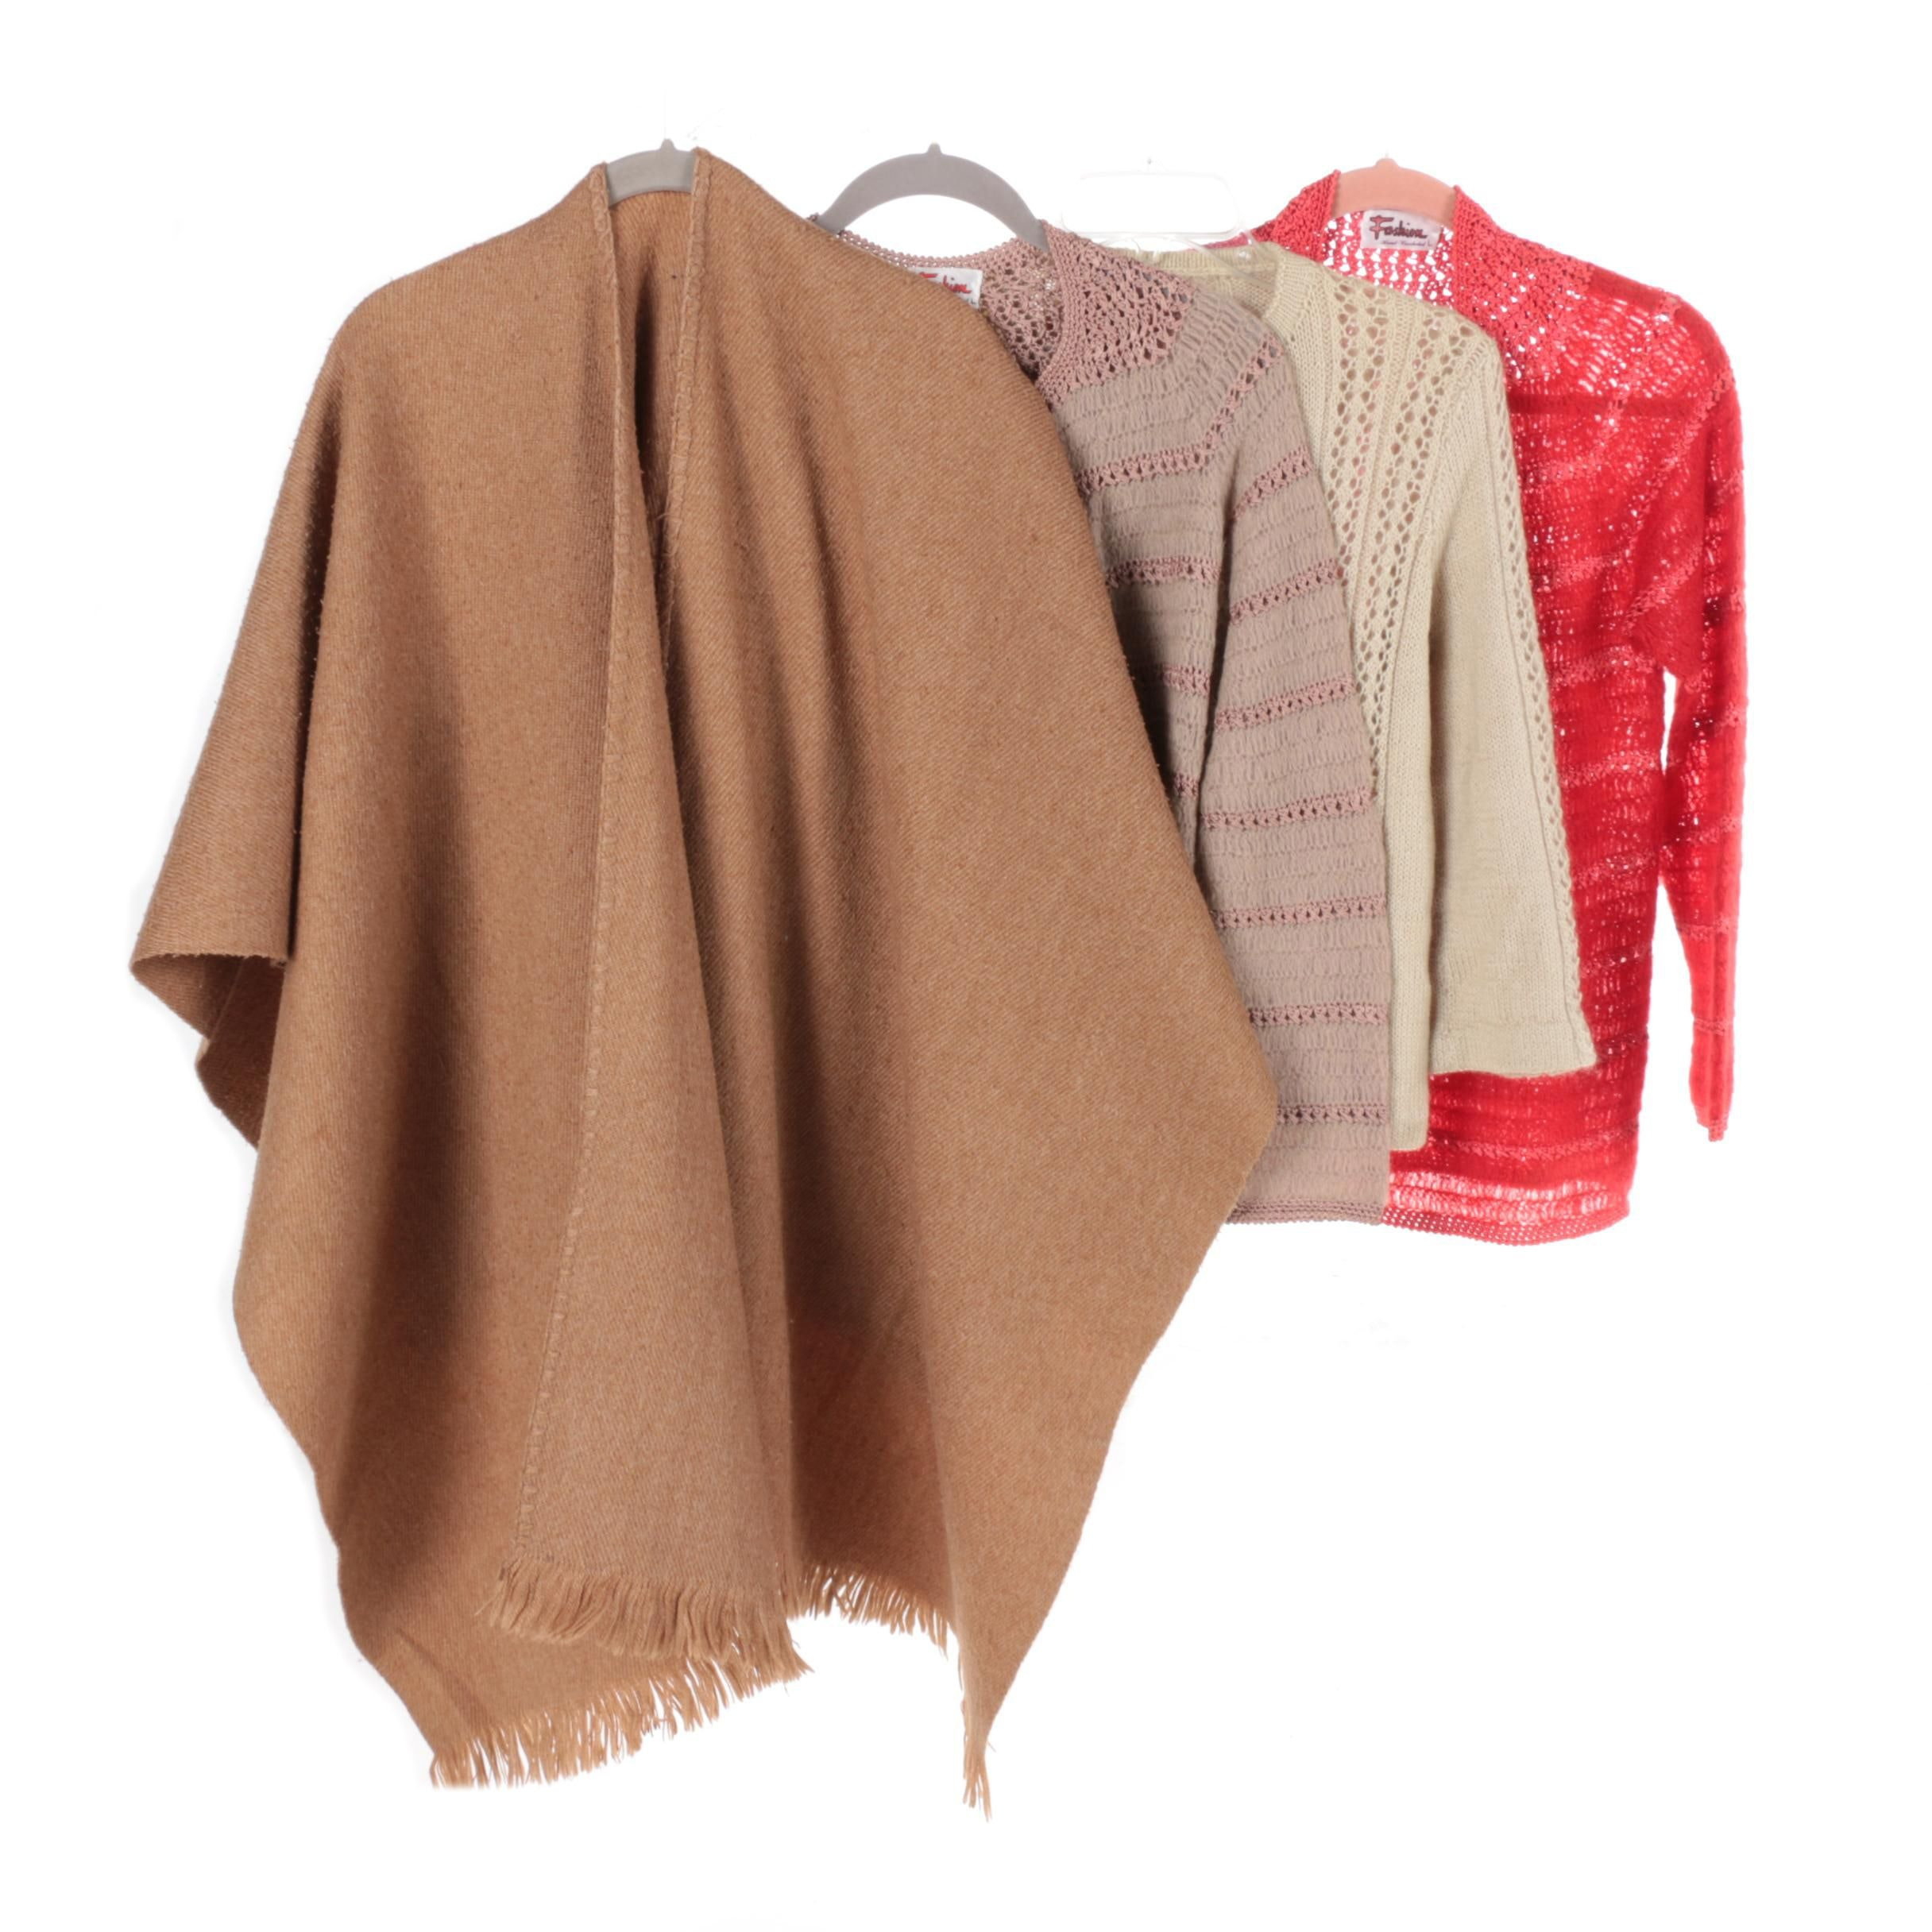 Women's Crochet and Knit Sweaters and Wrap